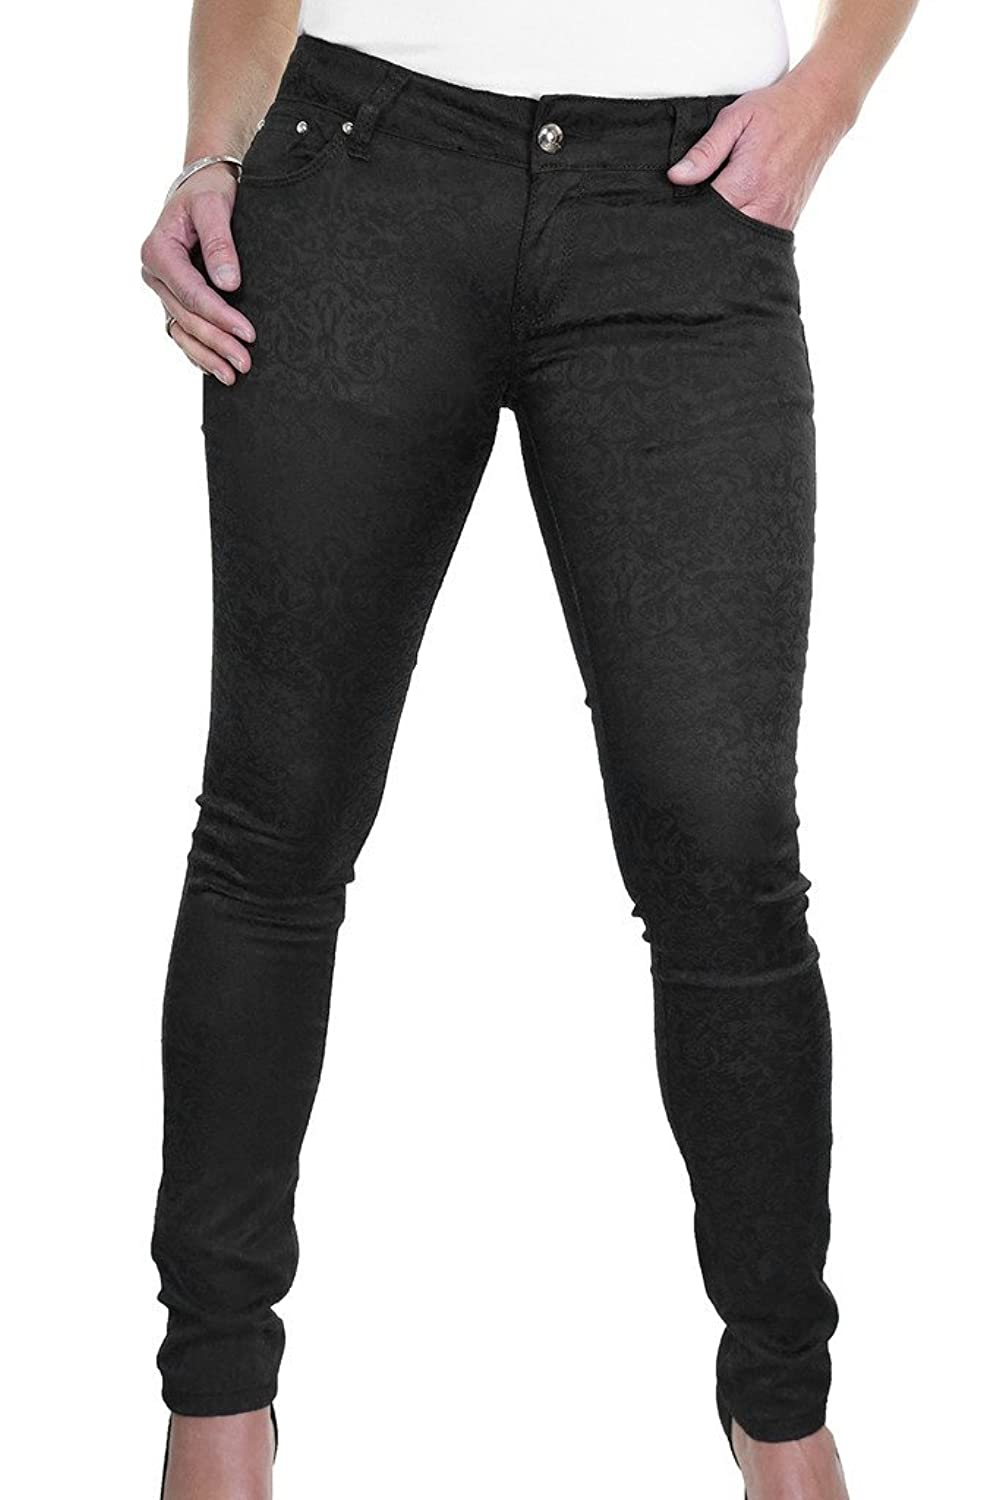 ICE (1520-1) Stretch Super Skinny Low Rise Jeans Emboss Flock Effect Black